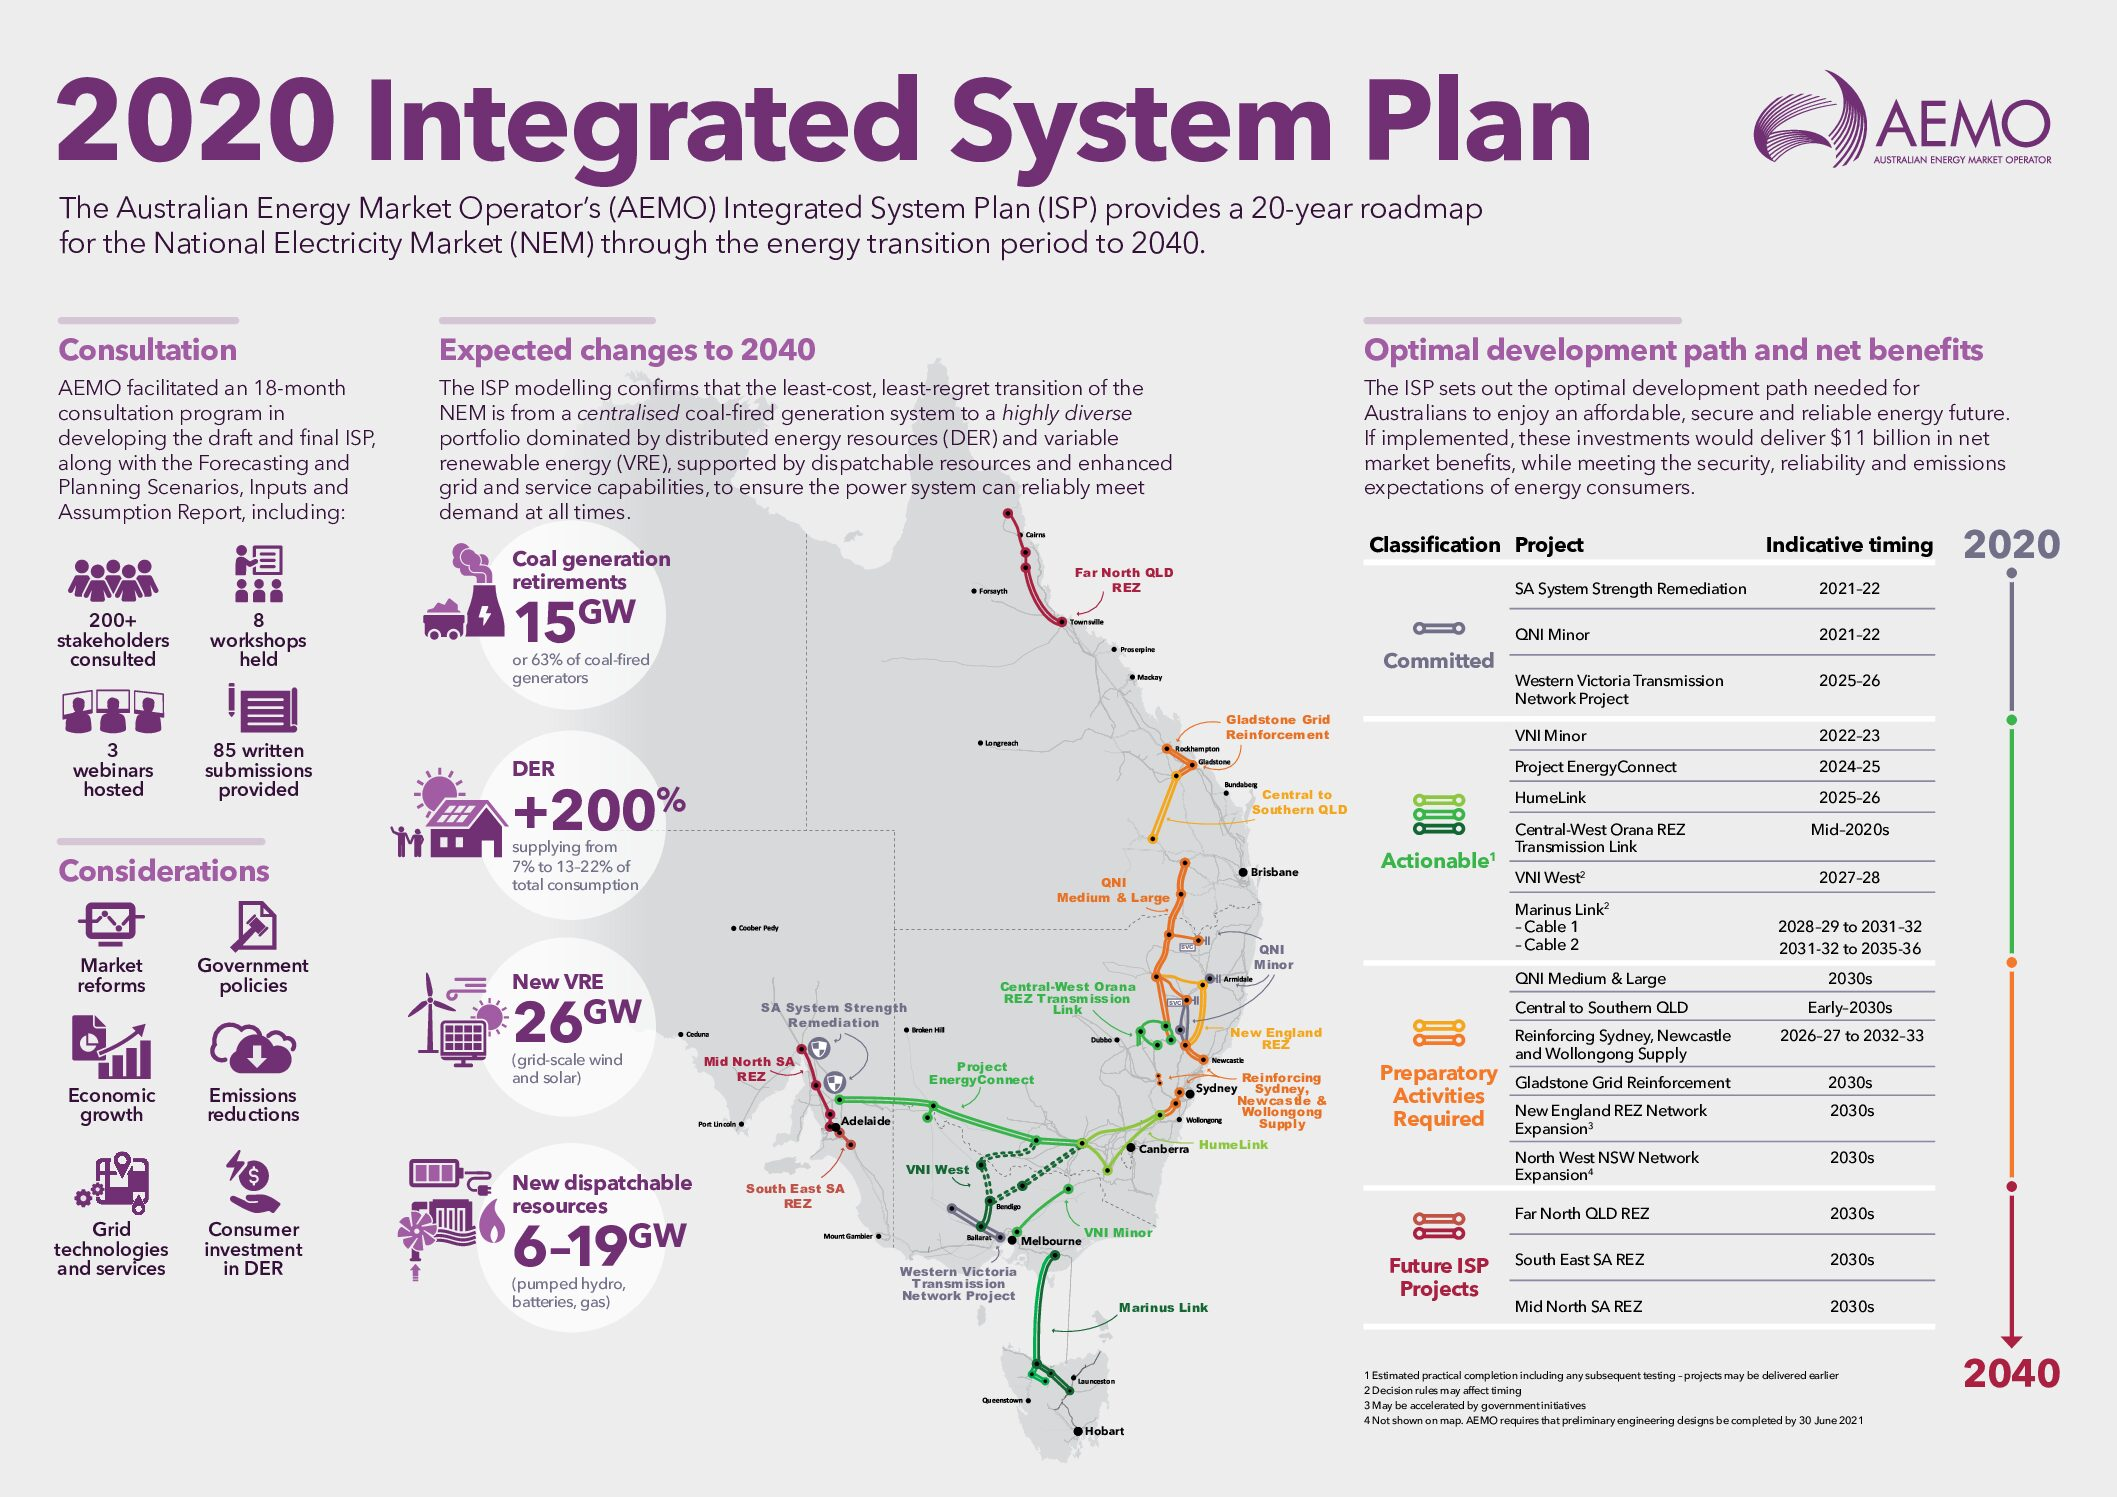 AEMO Integrated System Plan 2020 a green light for renewables, DER, storage